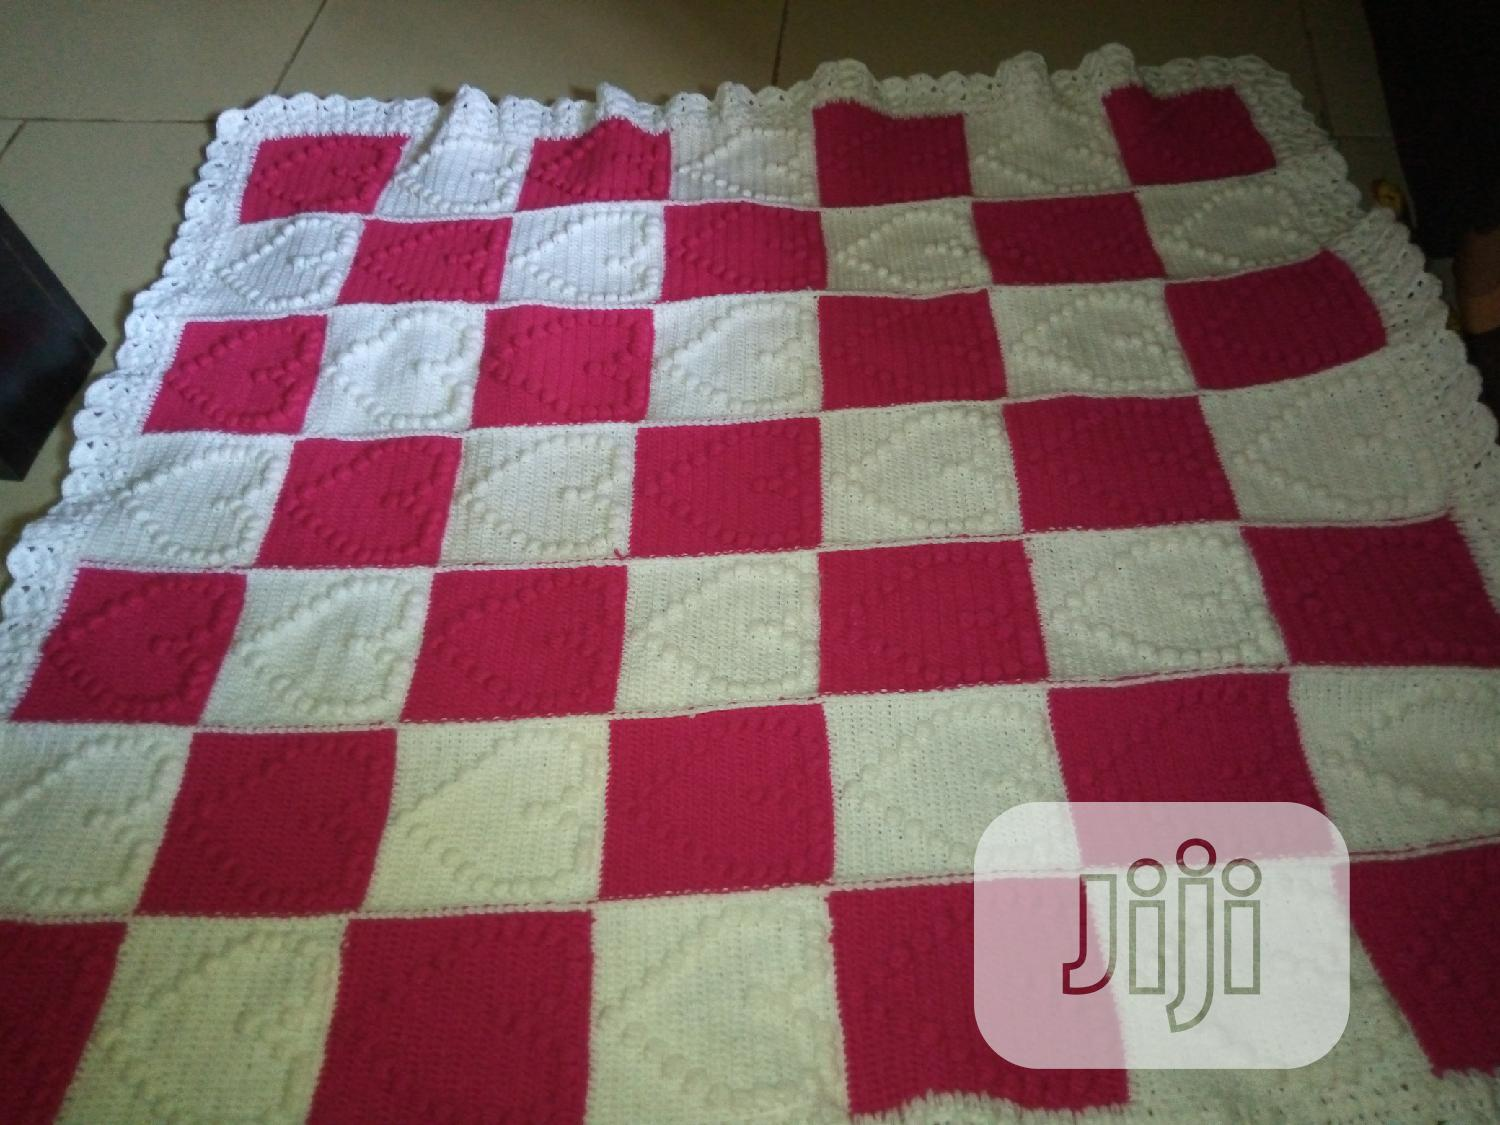 Archive: Baby's Shawl/Blanket